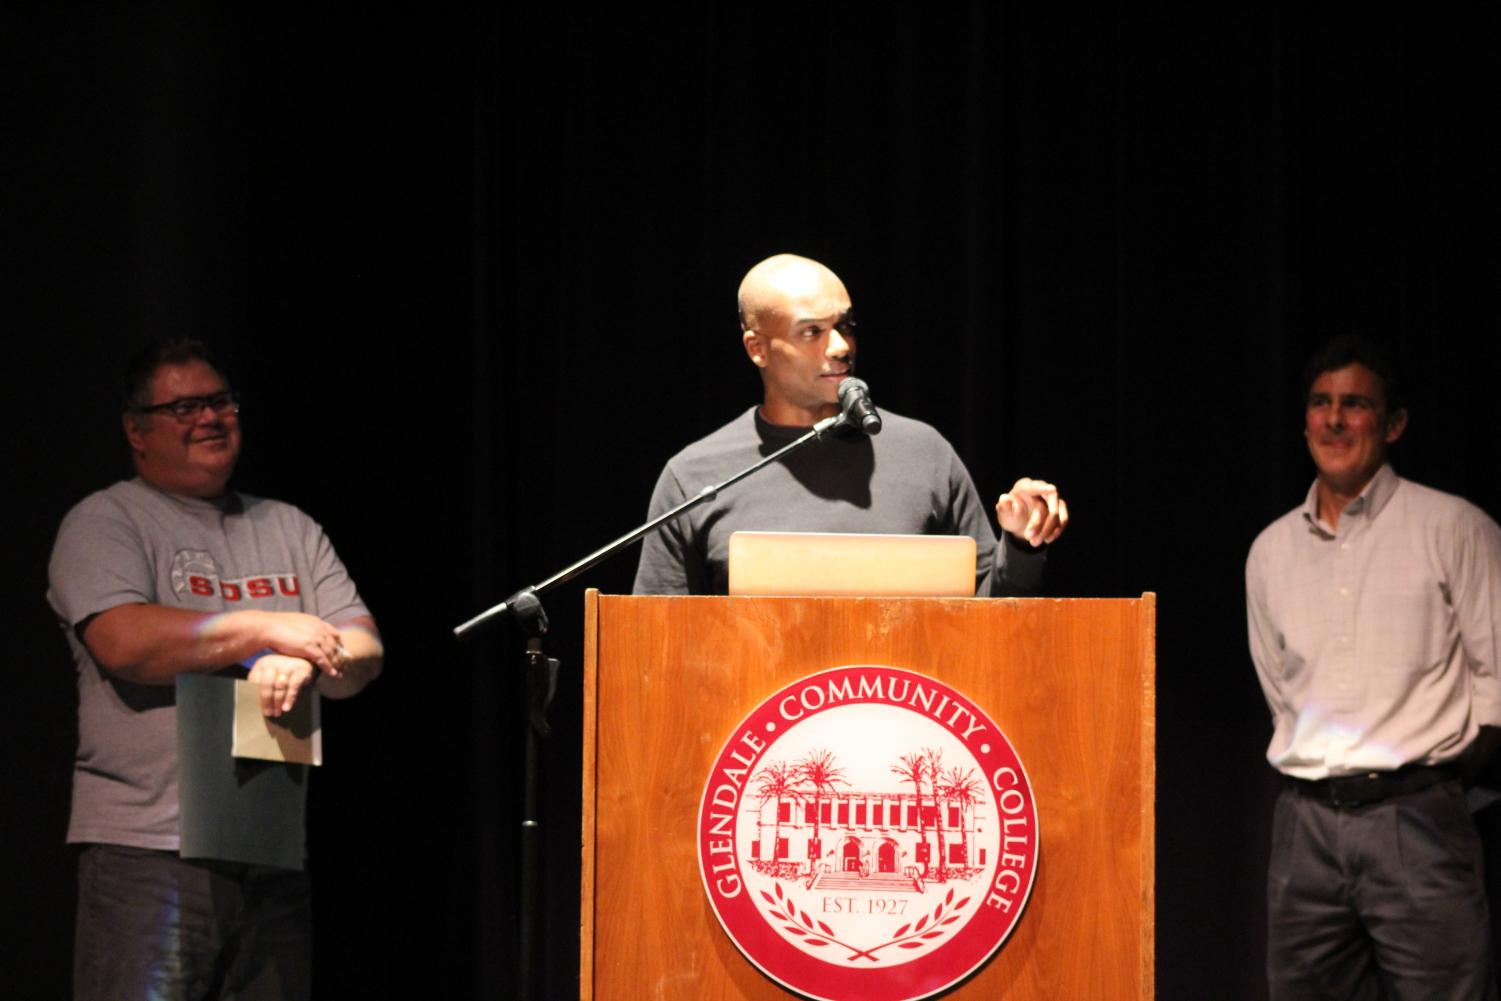 Kasan Butcher, flanked by counselor James Castel de Oro(left), and professor Joseph Beeman(right), gives his acceptance speech.